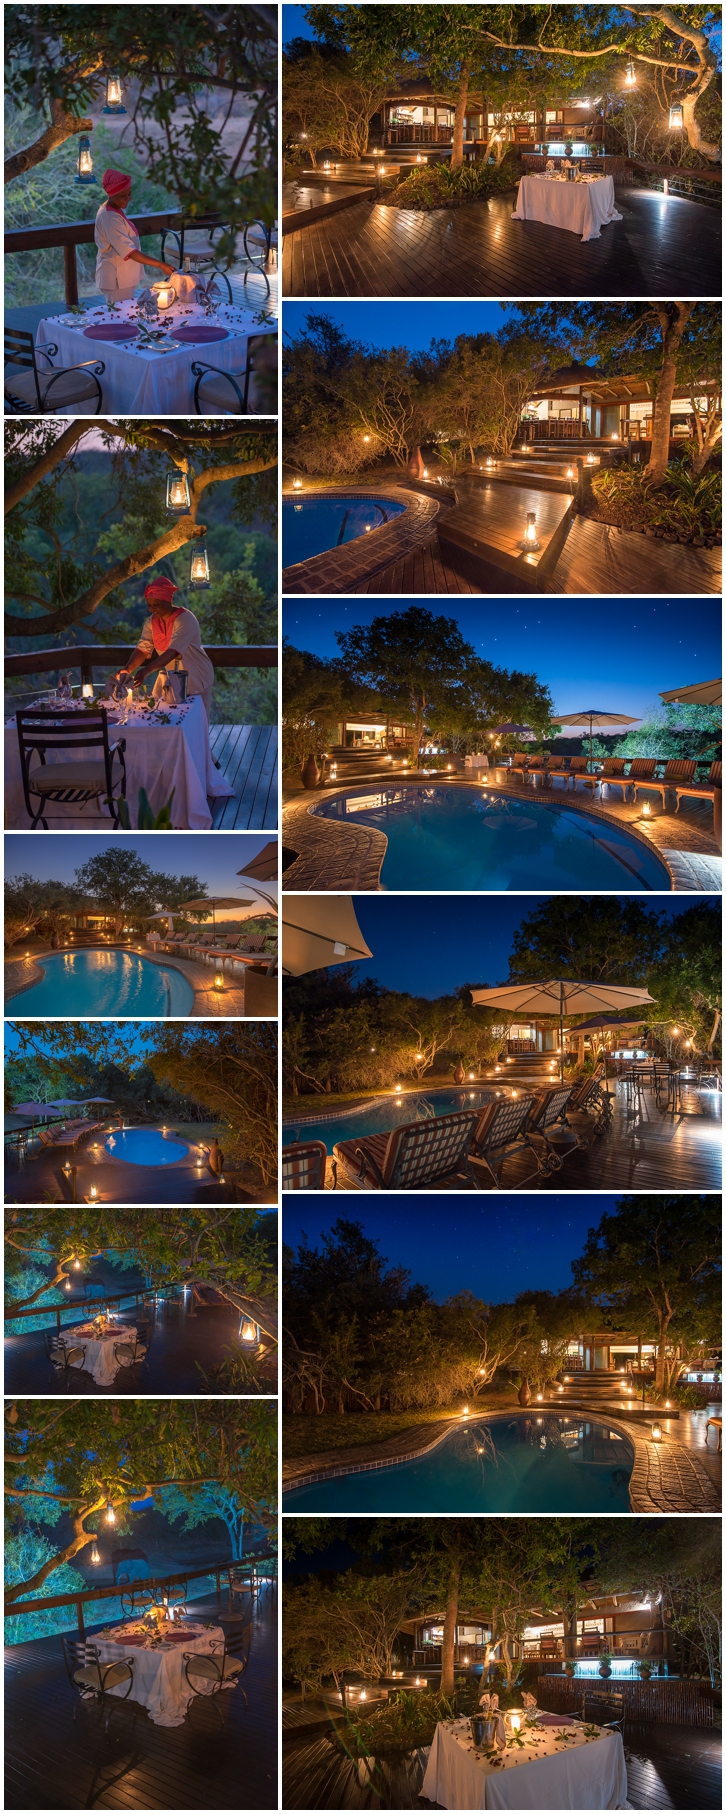 Travel and marketing lodge photography